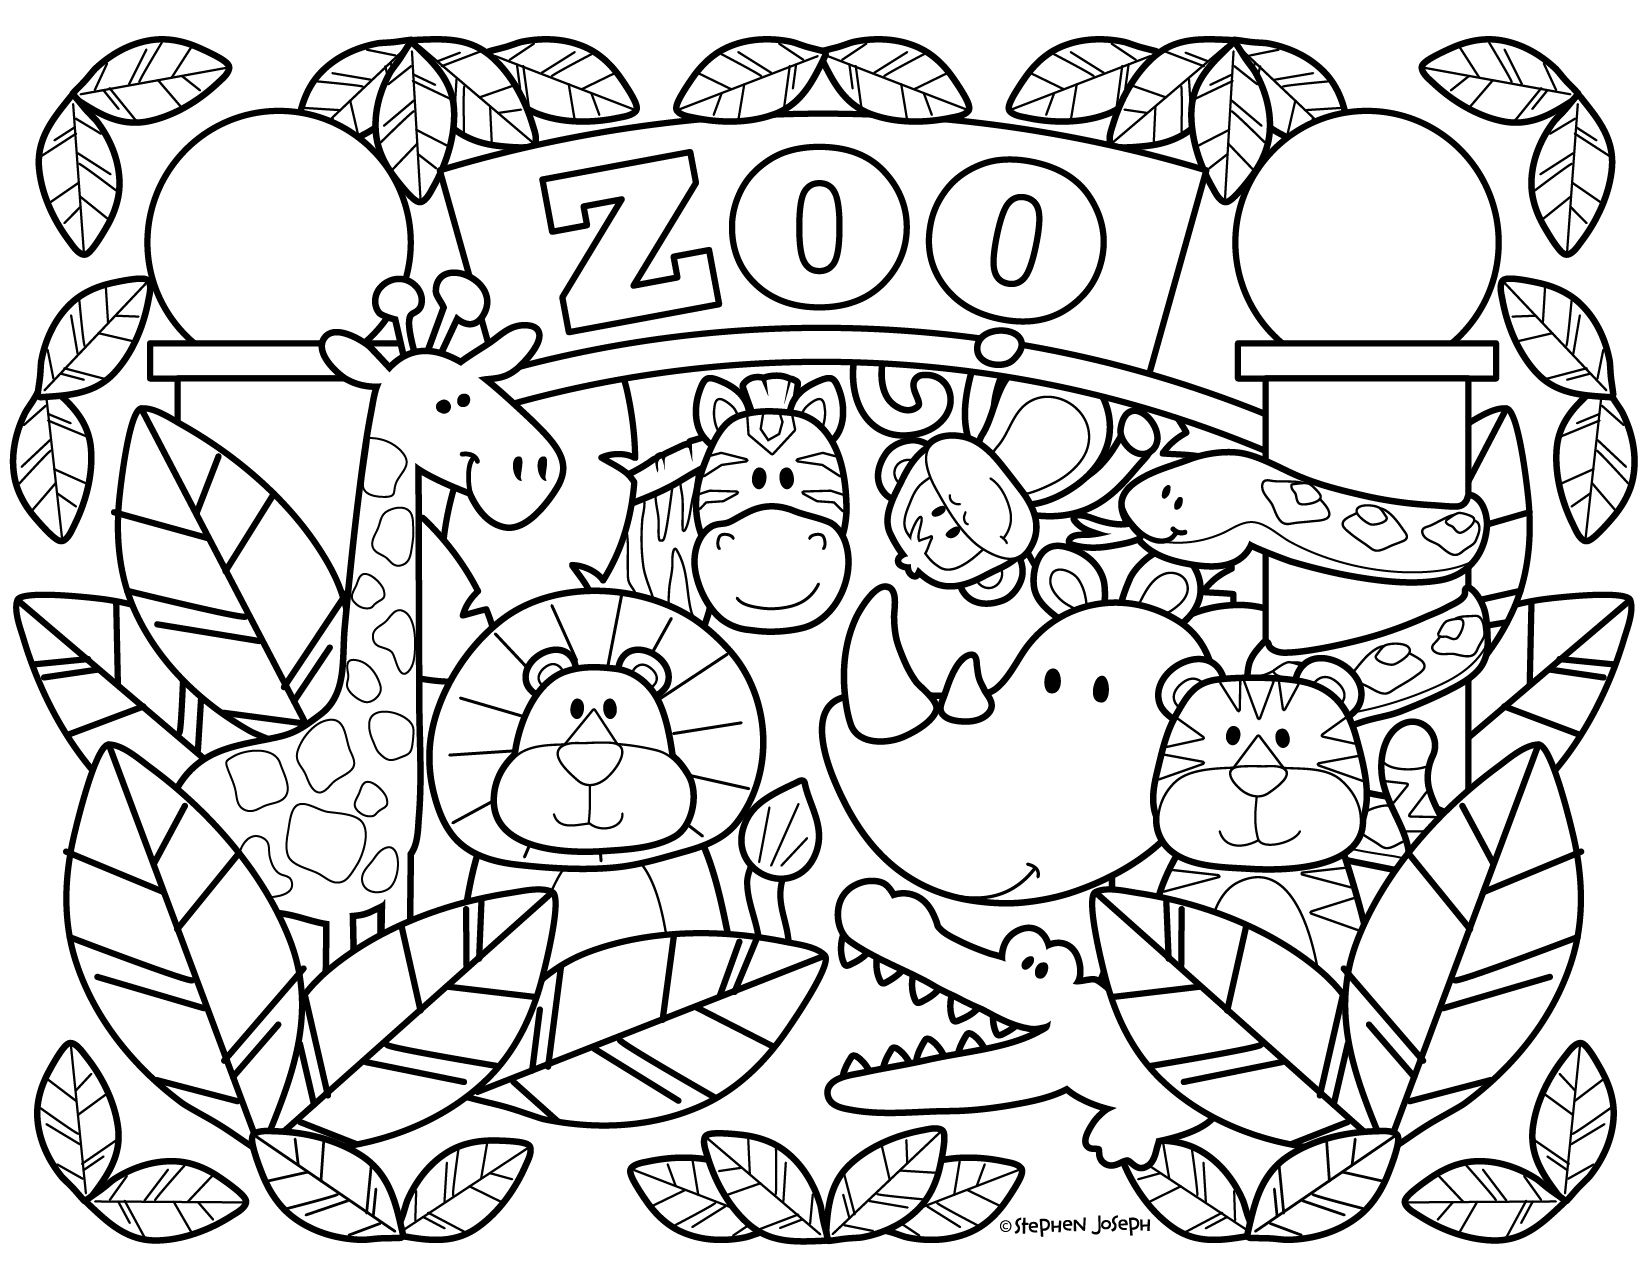 Zoo Coloring Pages - Printable & Free! By Stephen Joseph Gifts